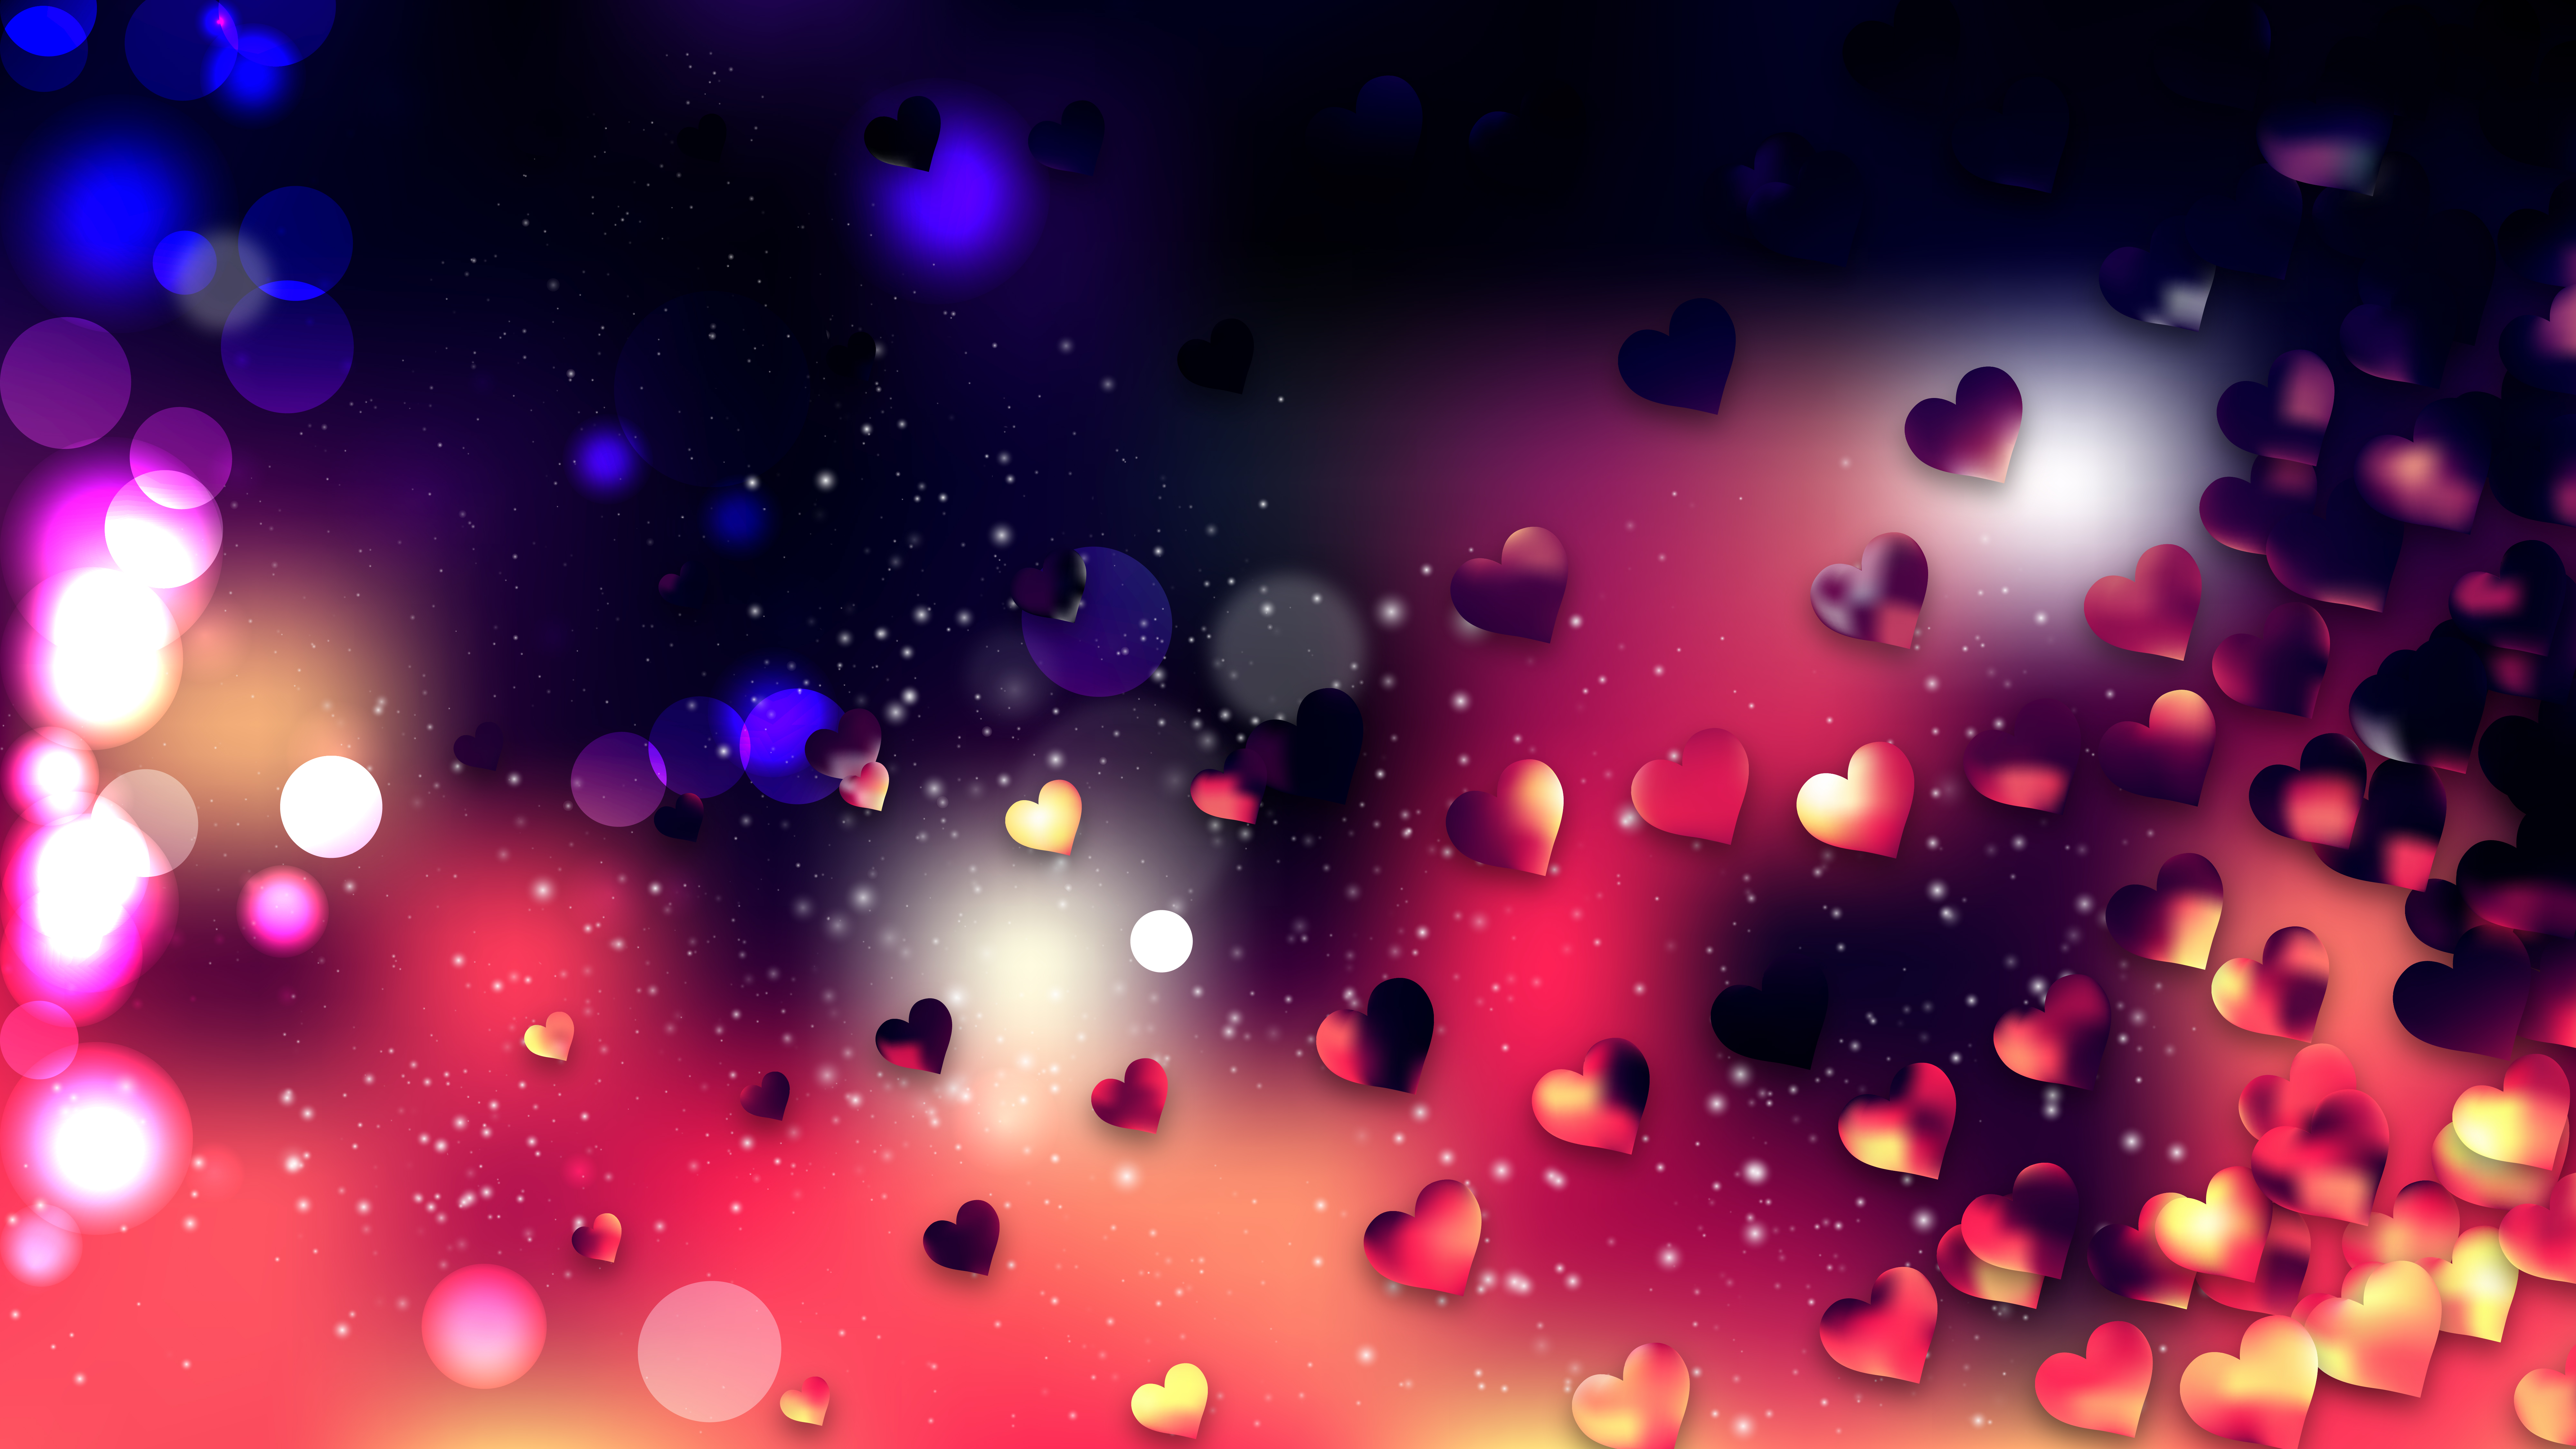 Red and Black Valentines Background Image 8000x4500